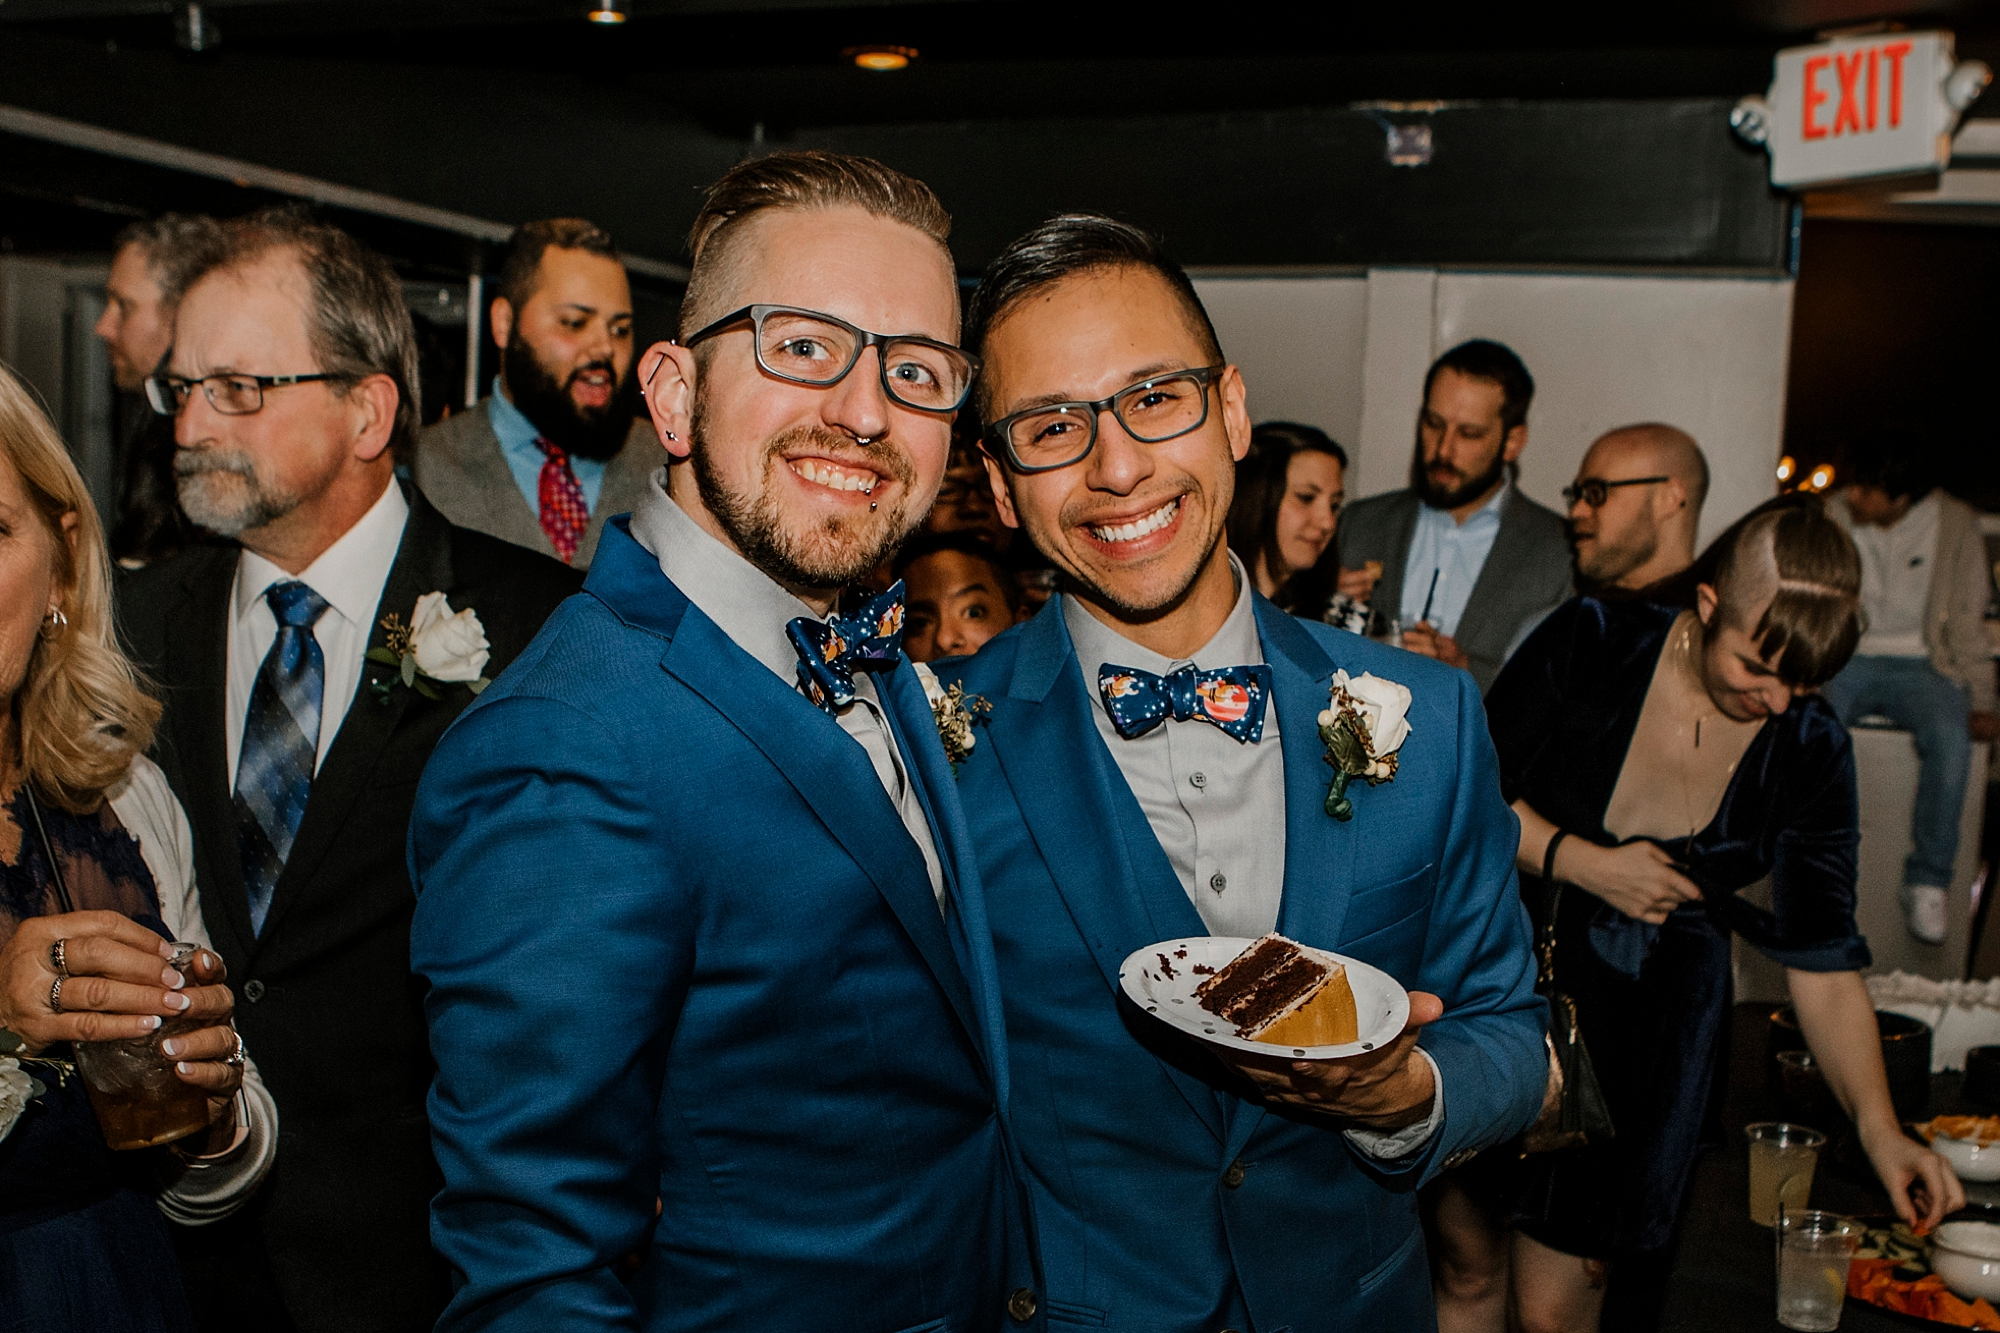 Joe_Mac_Creative_Philadelphia_Philly_LGBT_Gay_Engagement_Wedding_Photography__0154.jpg